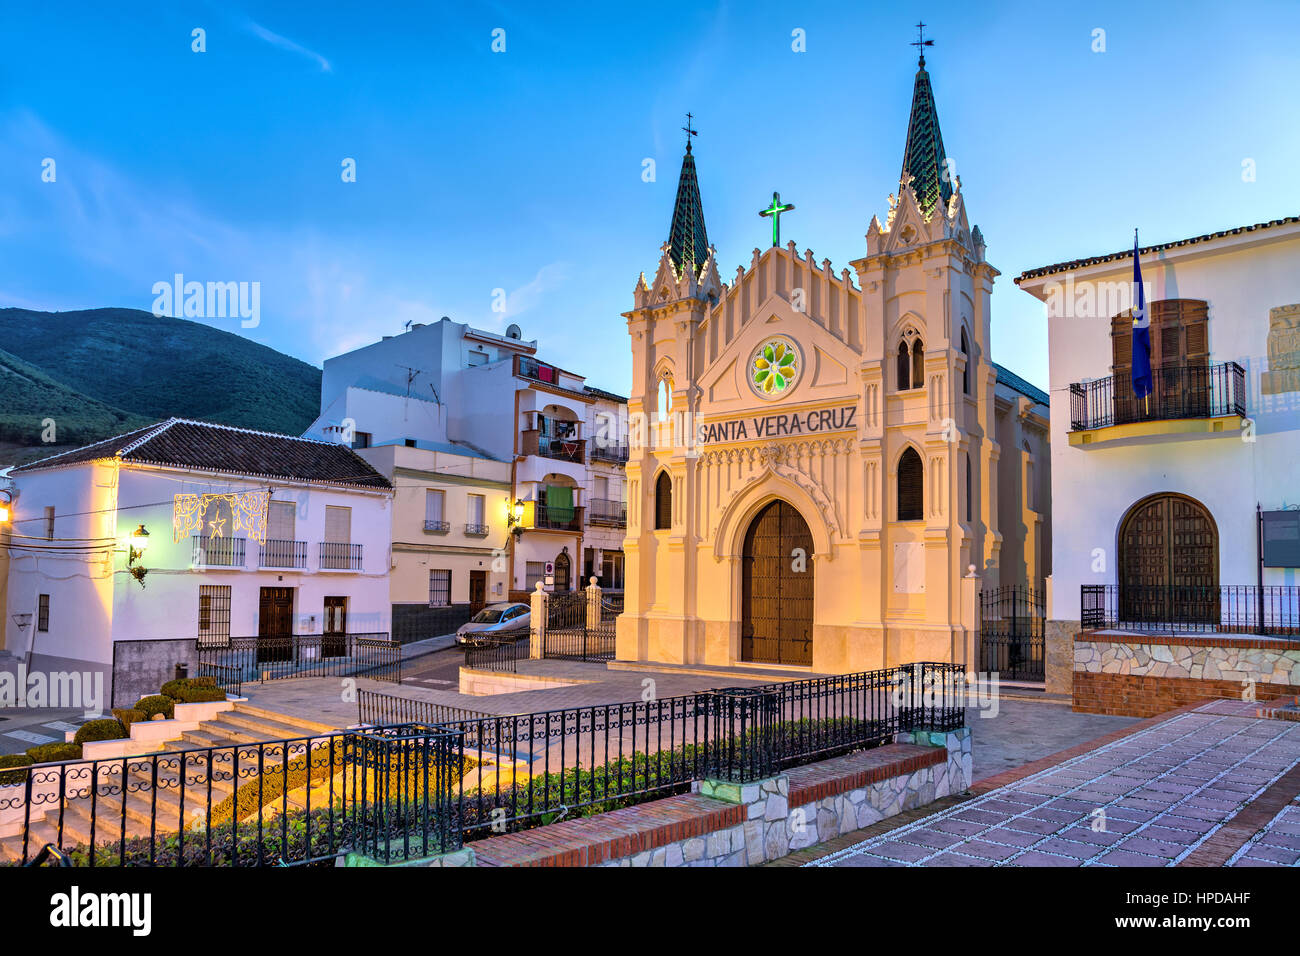 Church of Santa Vera Cruz in the evening in Alhaurin el Grande, Malaga province, Andalusia, Spain - Stock Image